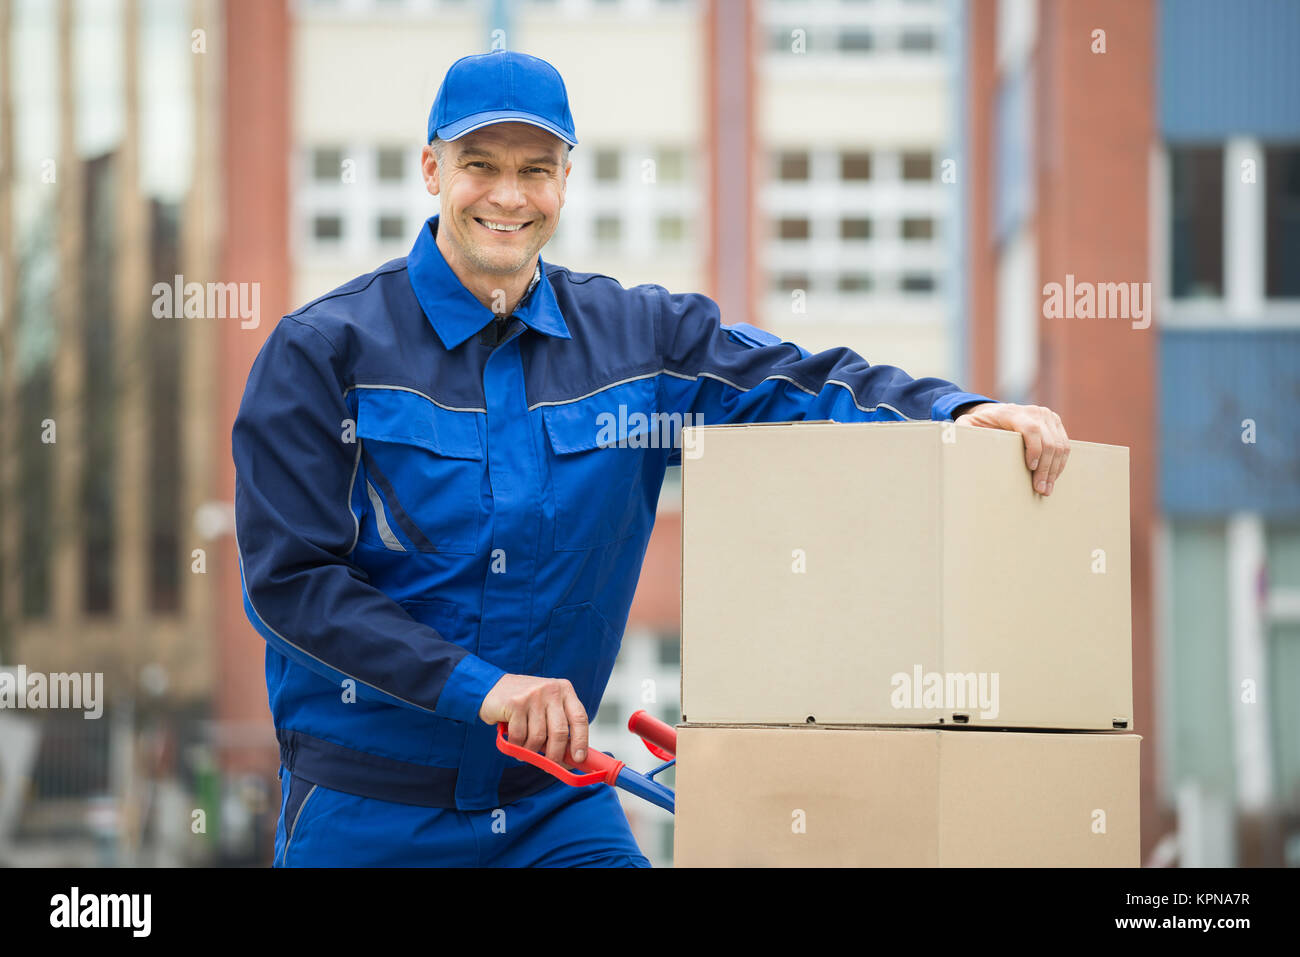 Deliveryman With Trolley Loaded With Cardboard Boxes - Stock Image